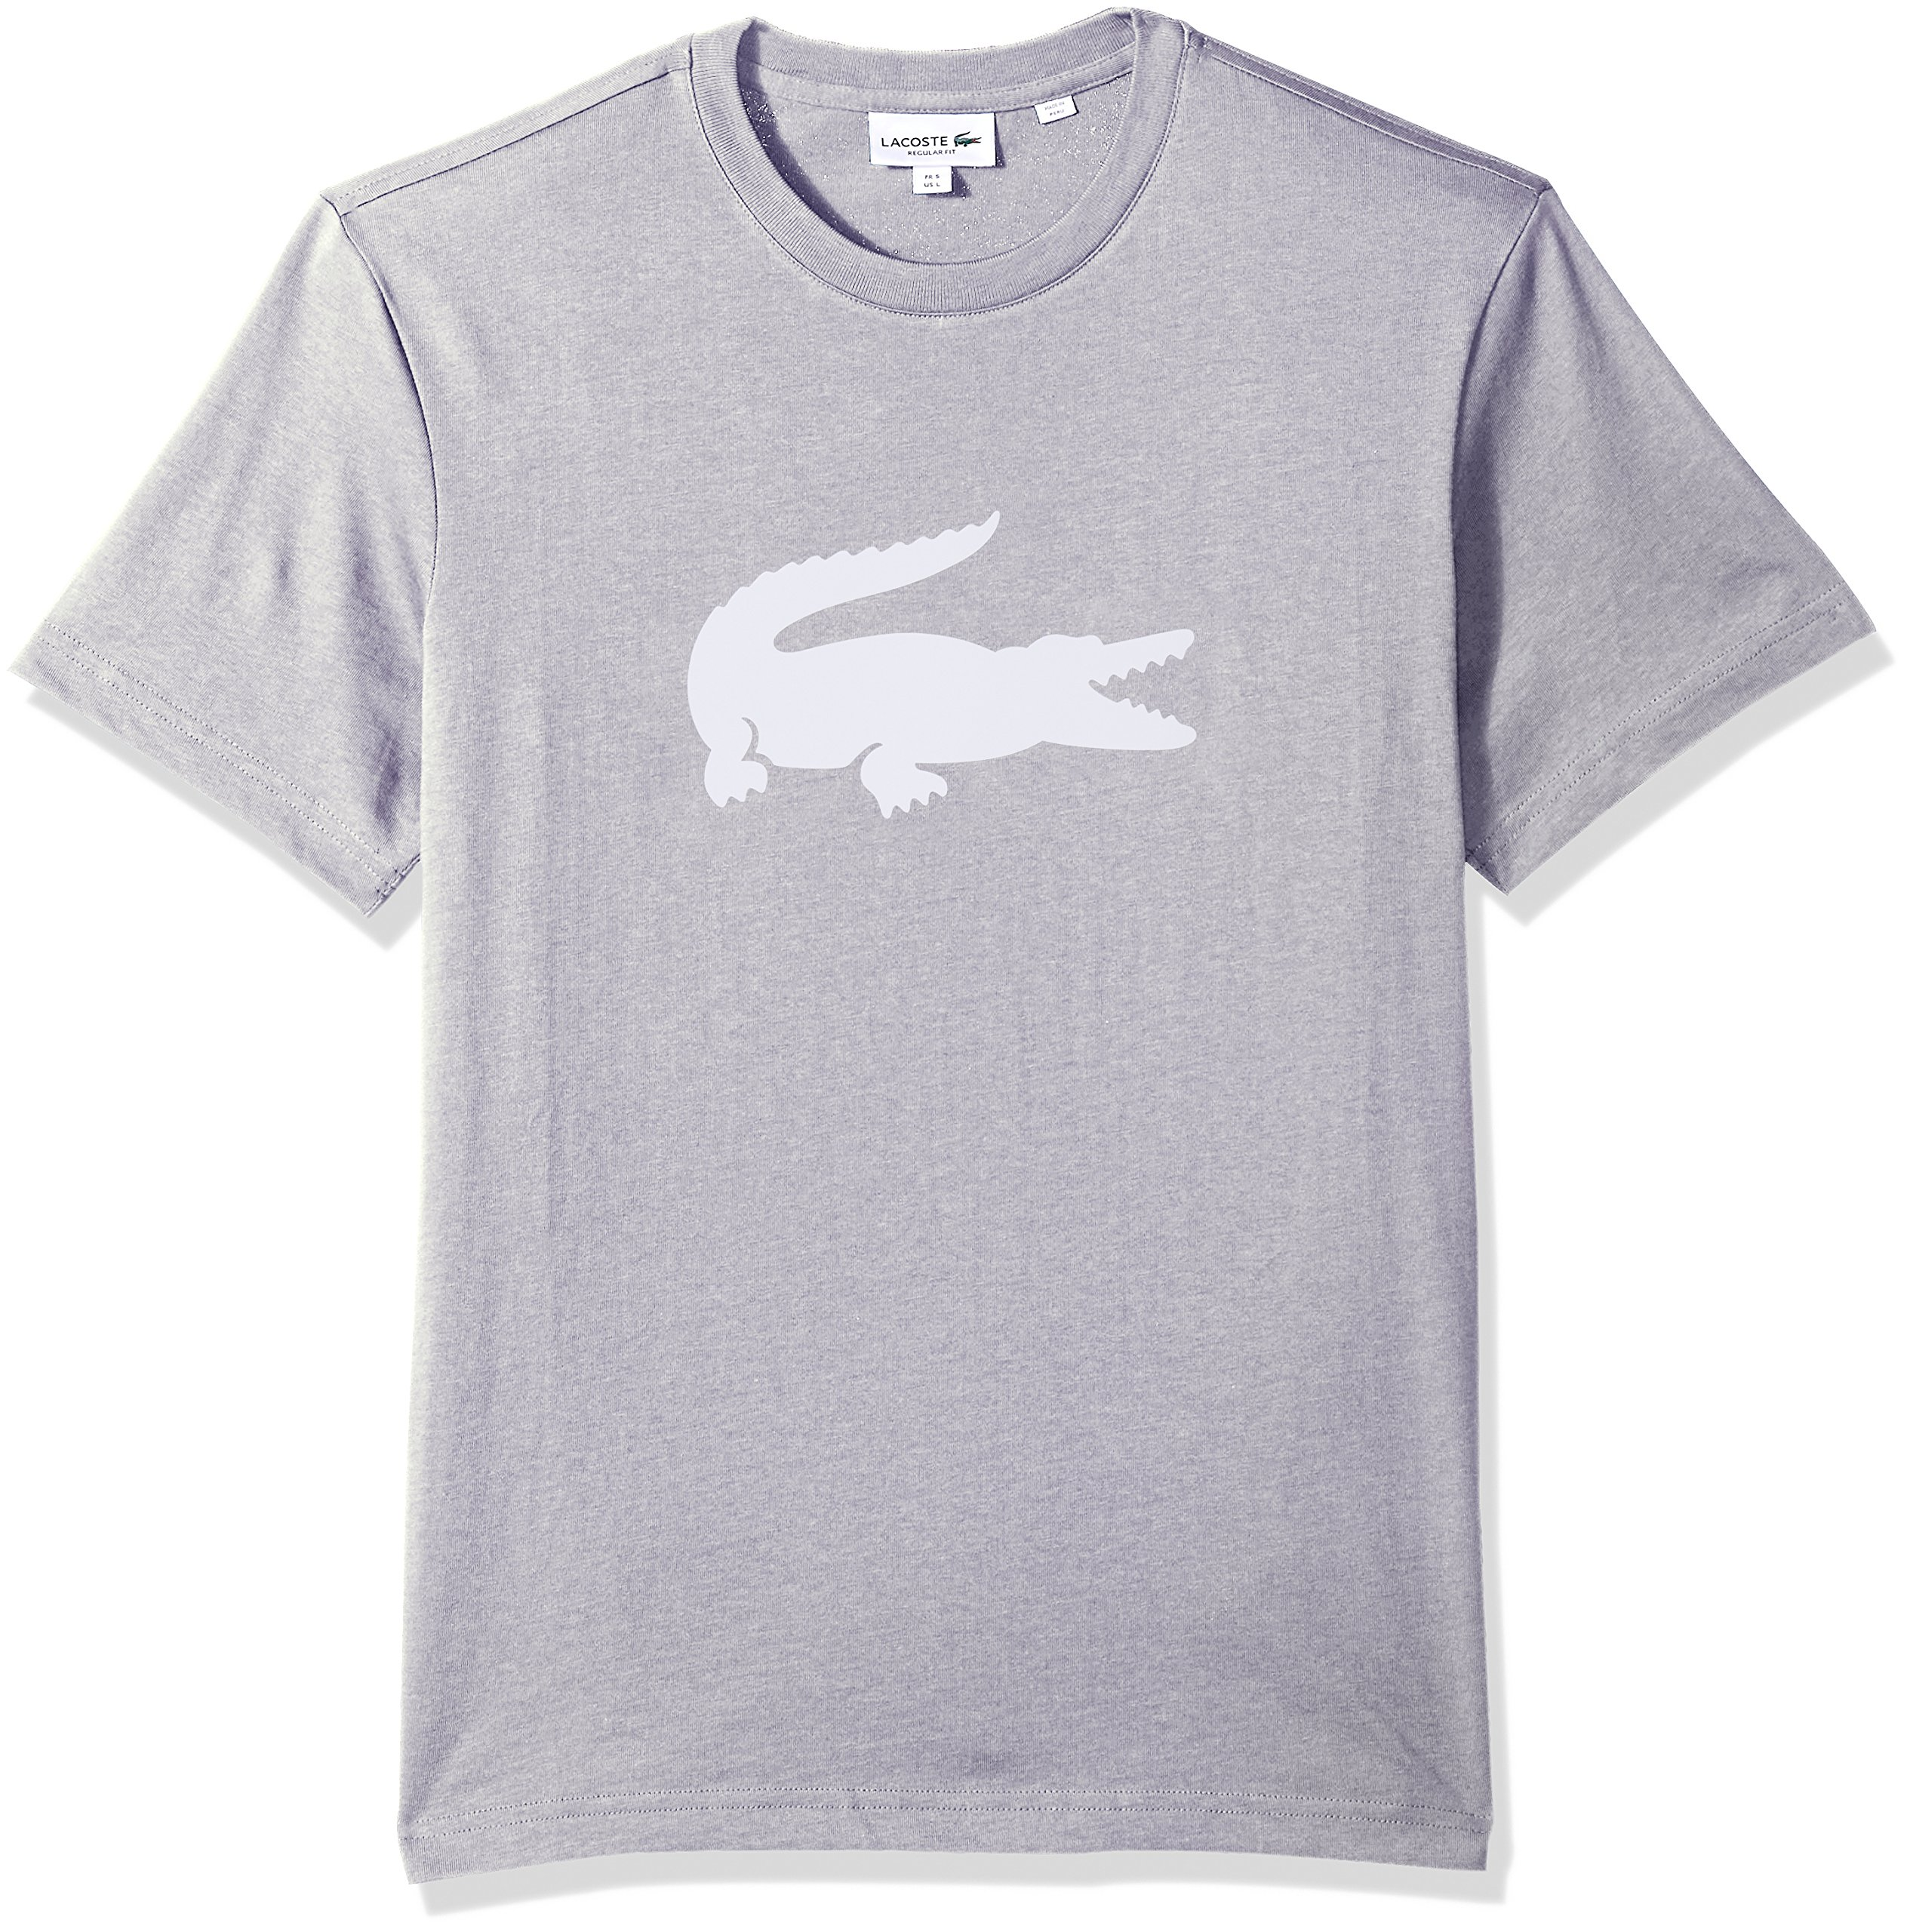 2b77e74f70 Galleon - Lacoste Men's Crew Neck Oversized Crocodile Cotton Jersey ...